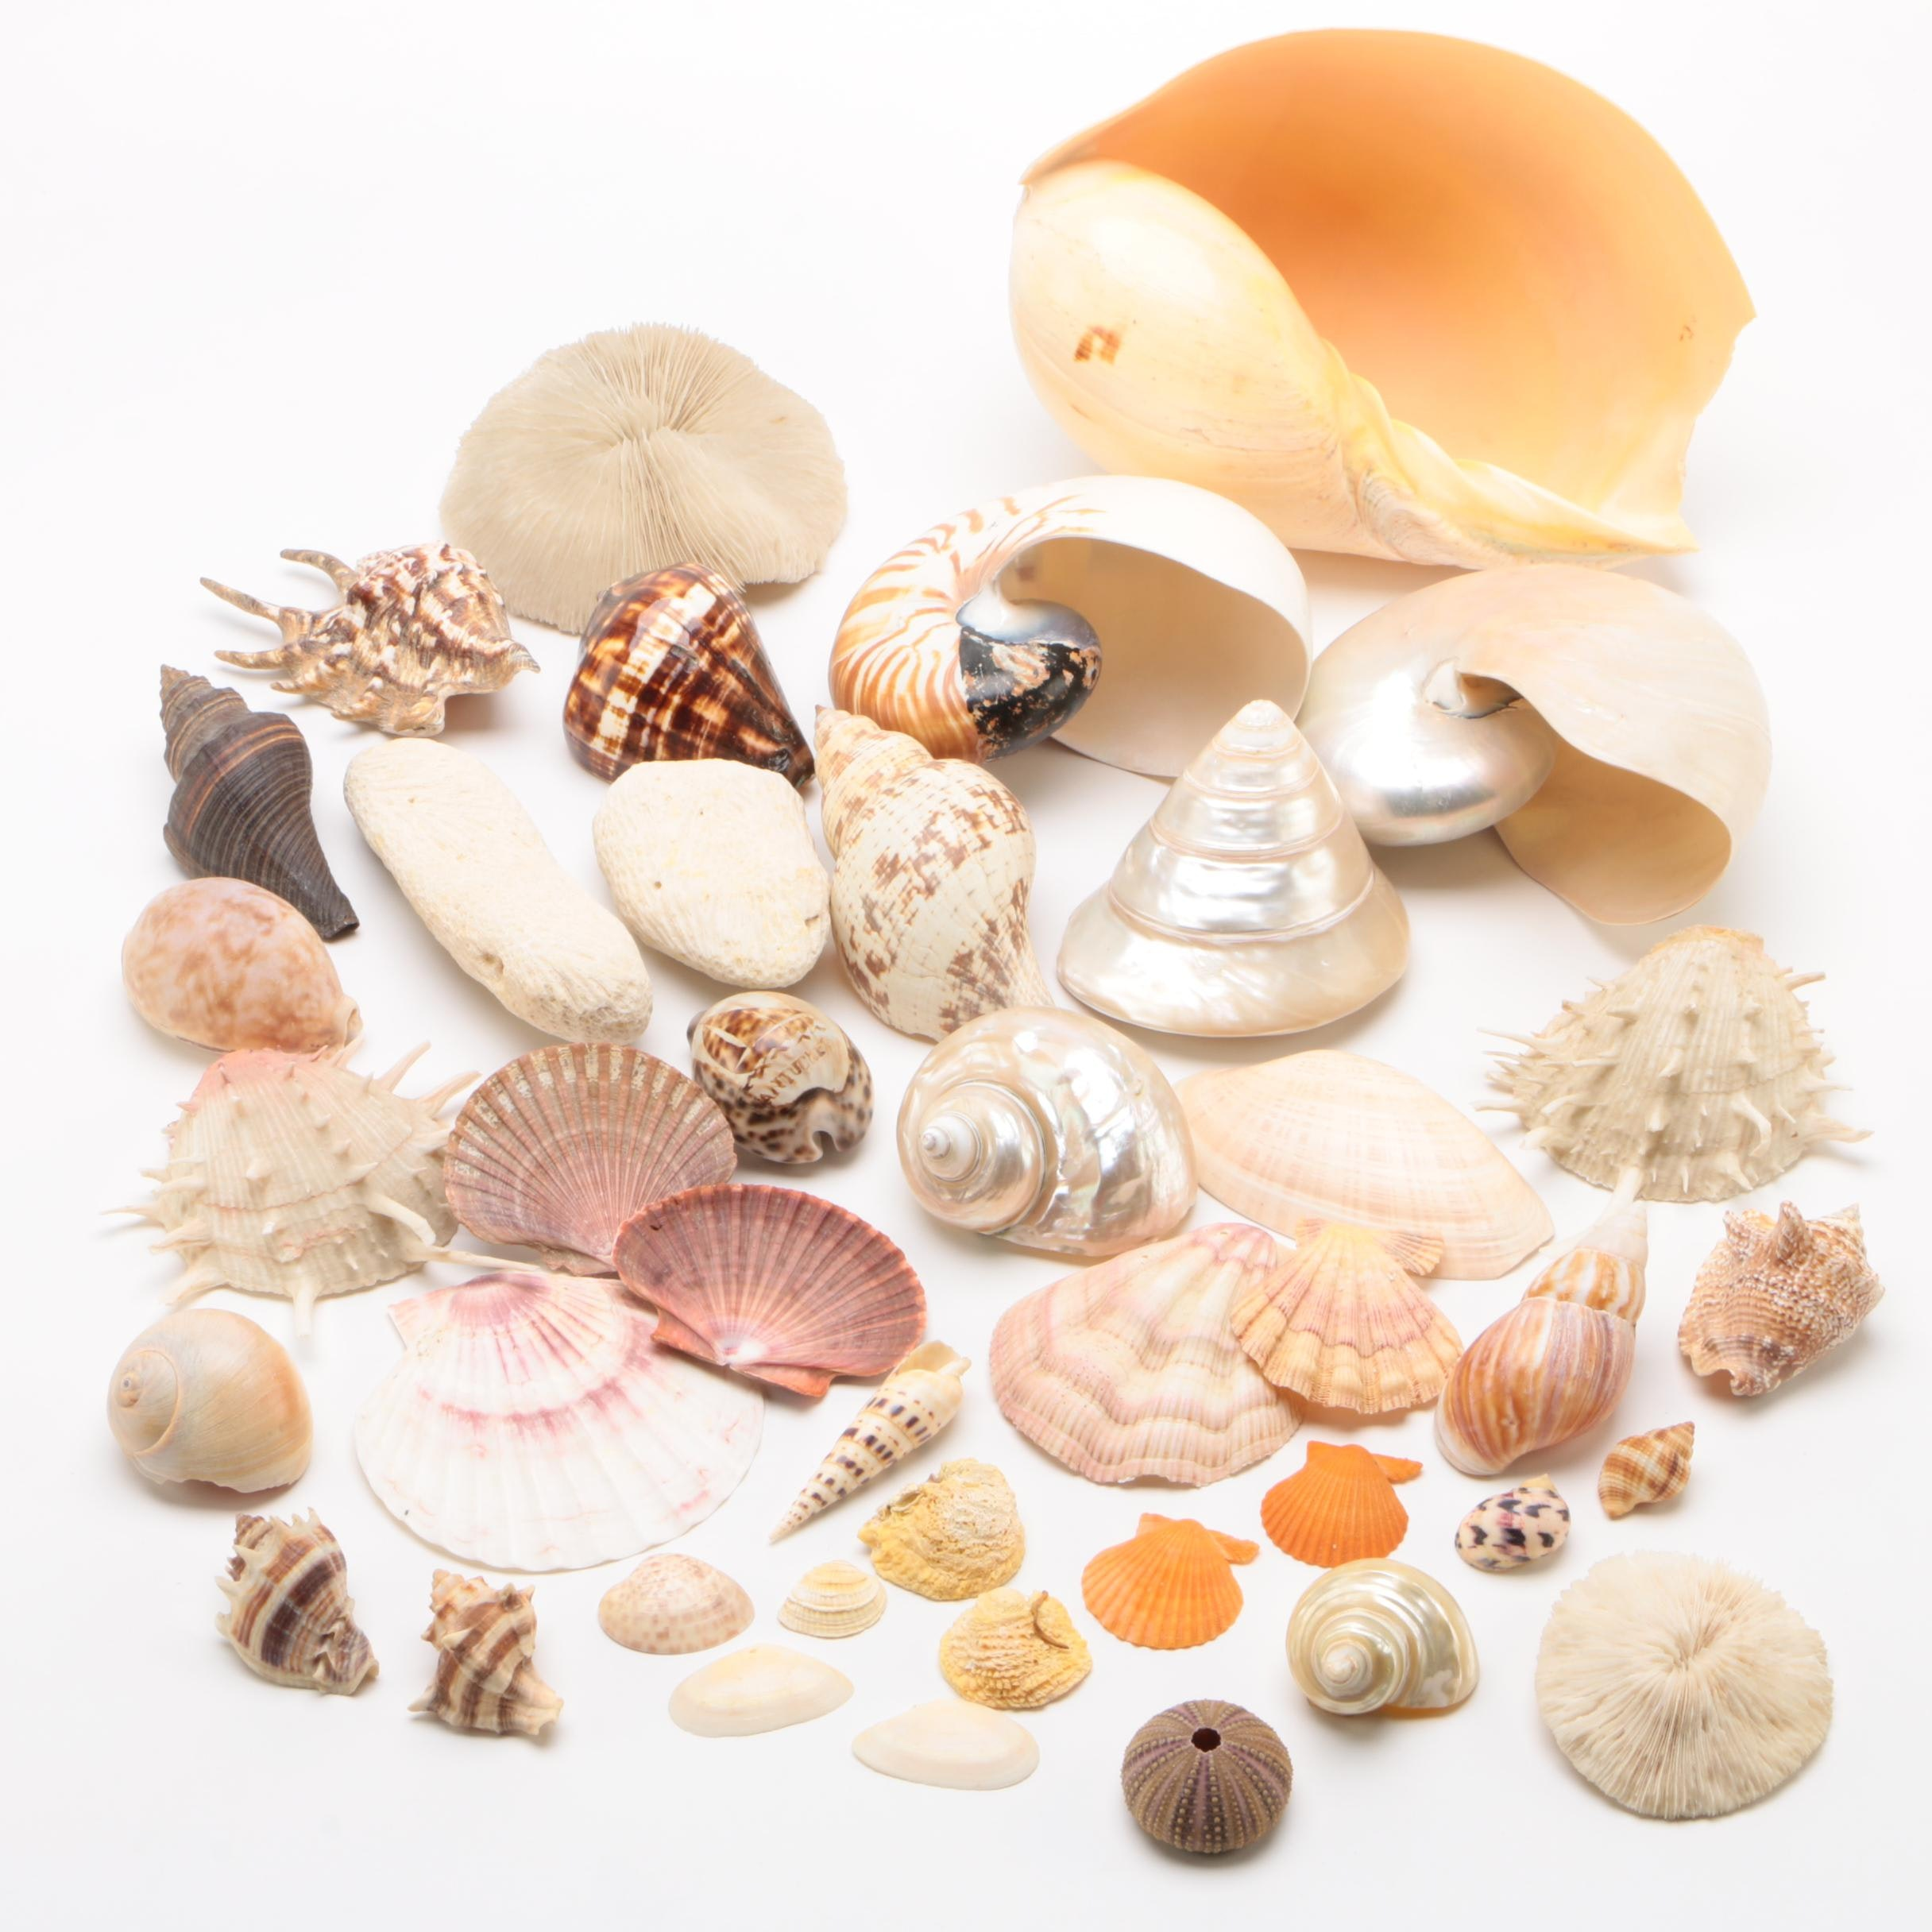 Sea Shell Collection including Nautilus Shells and Coral